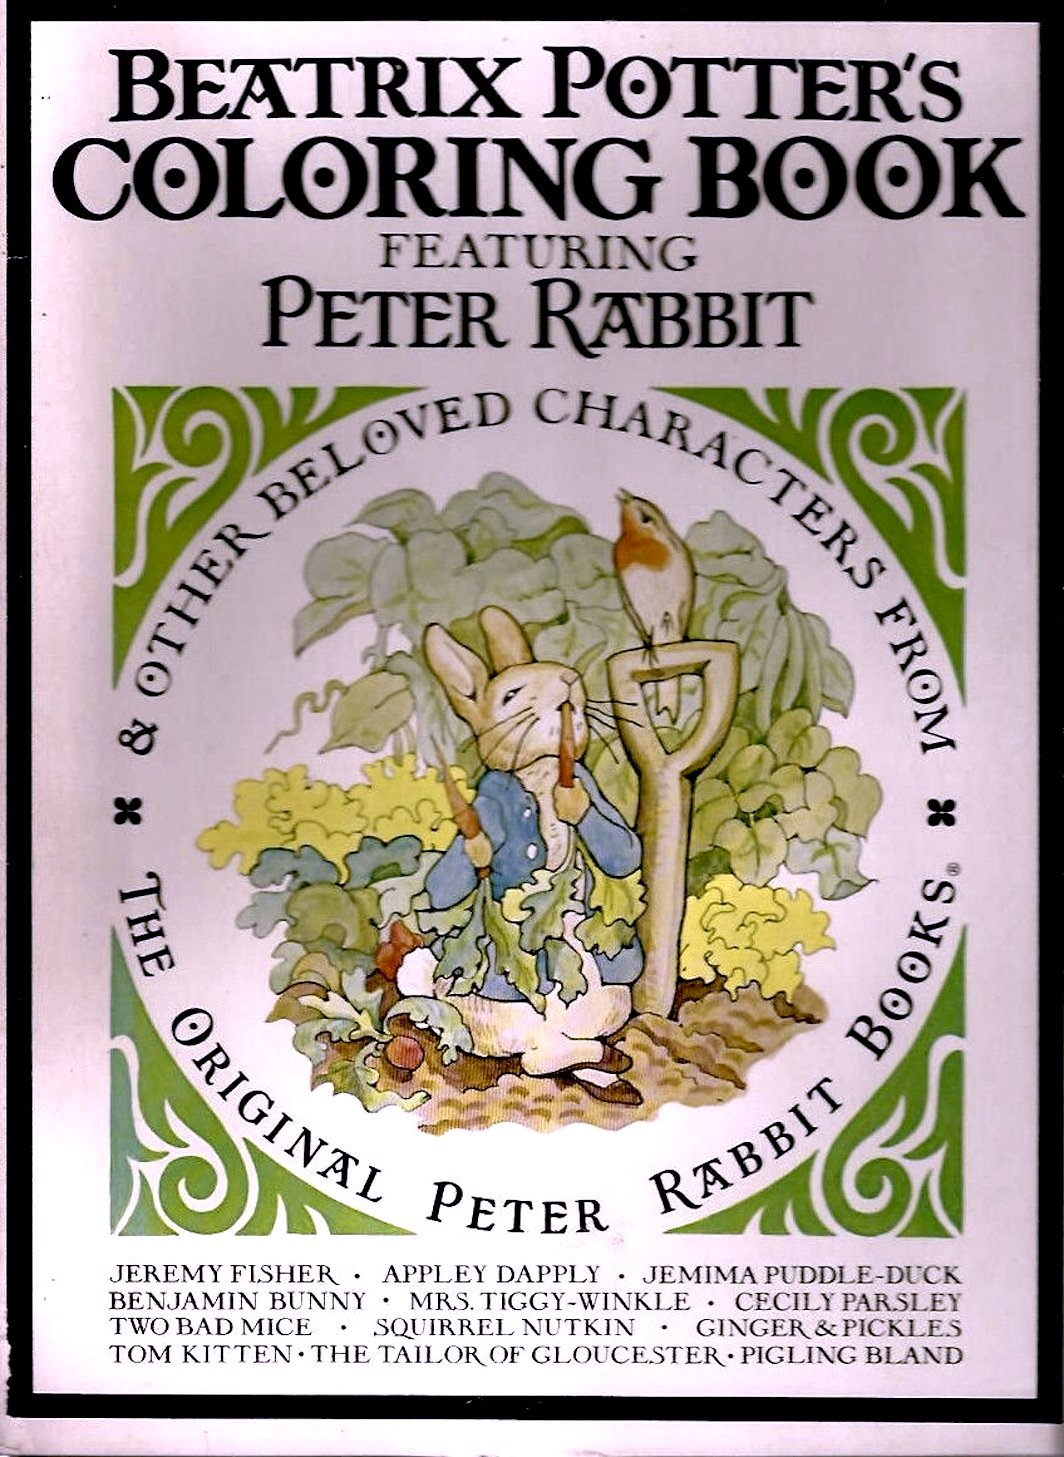 - Beatrix Potter's Coloring Book Featuring Peter Rabbit & Other